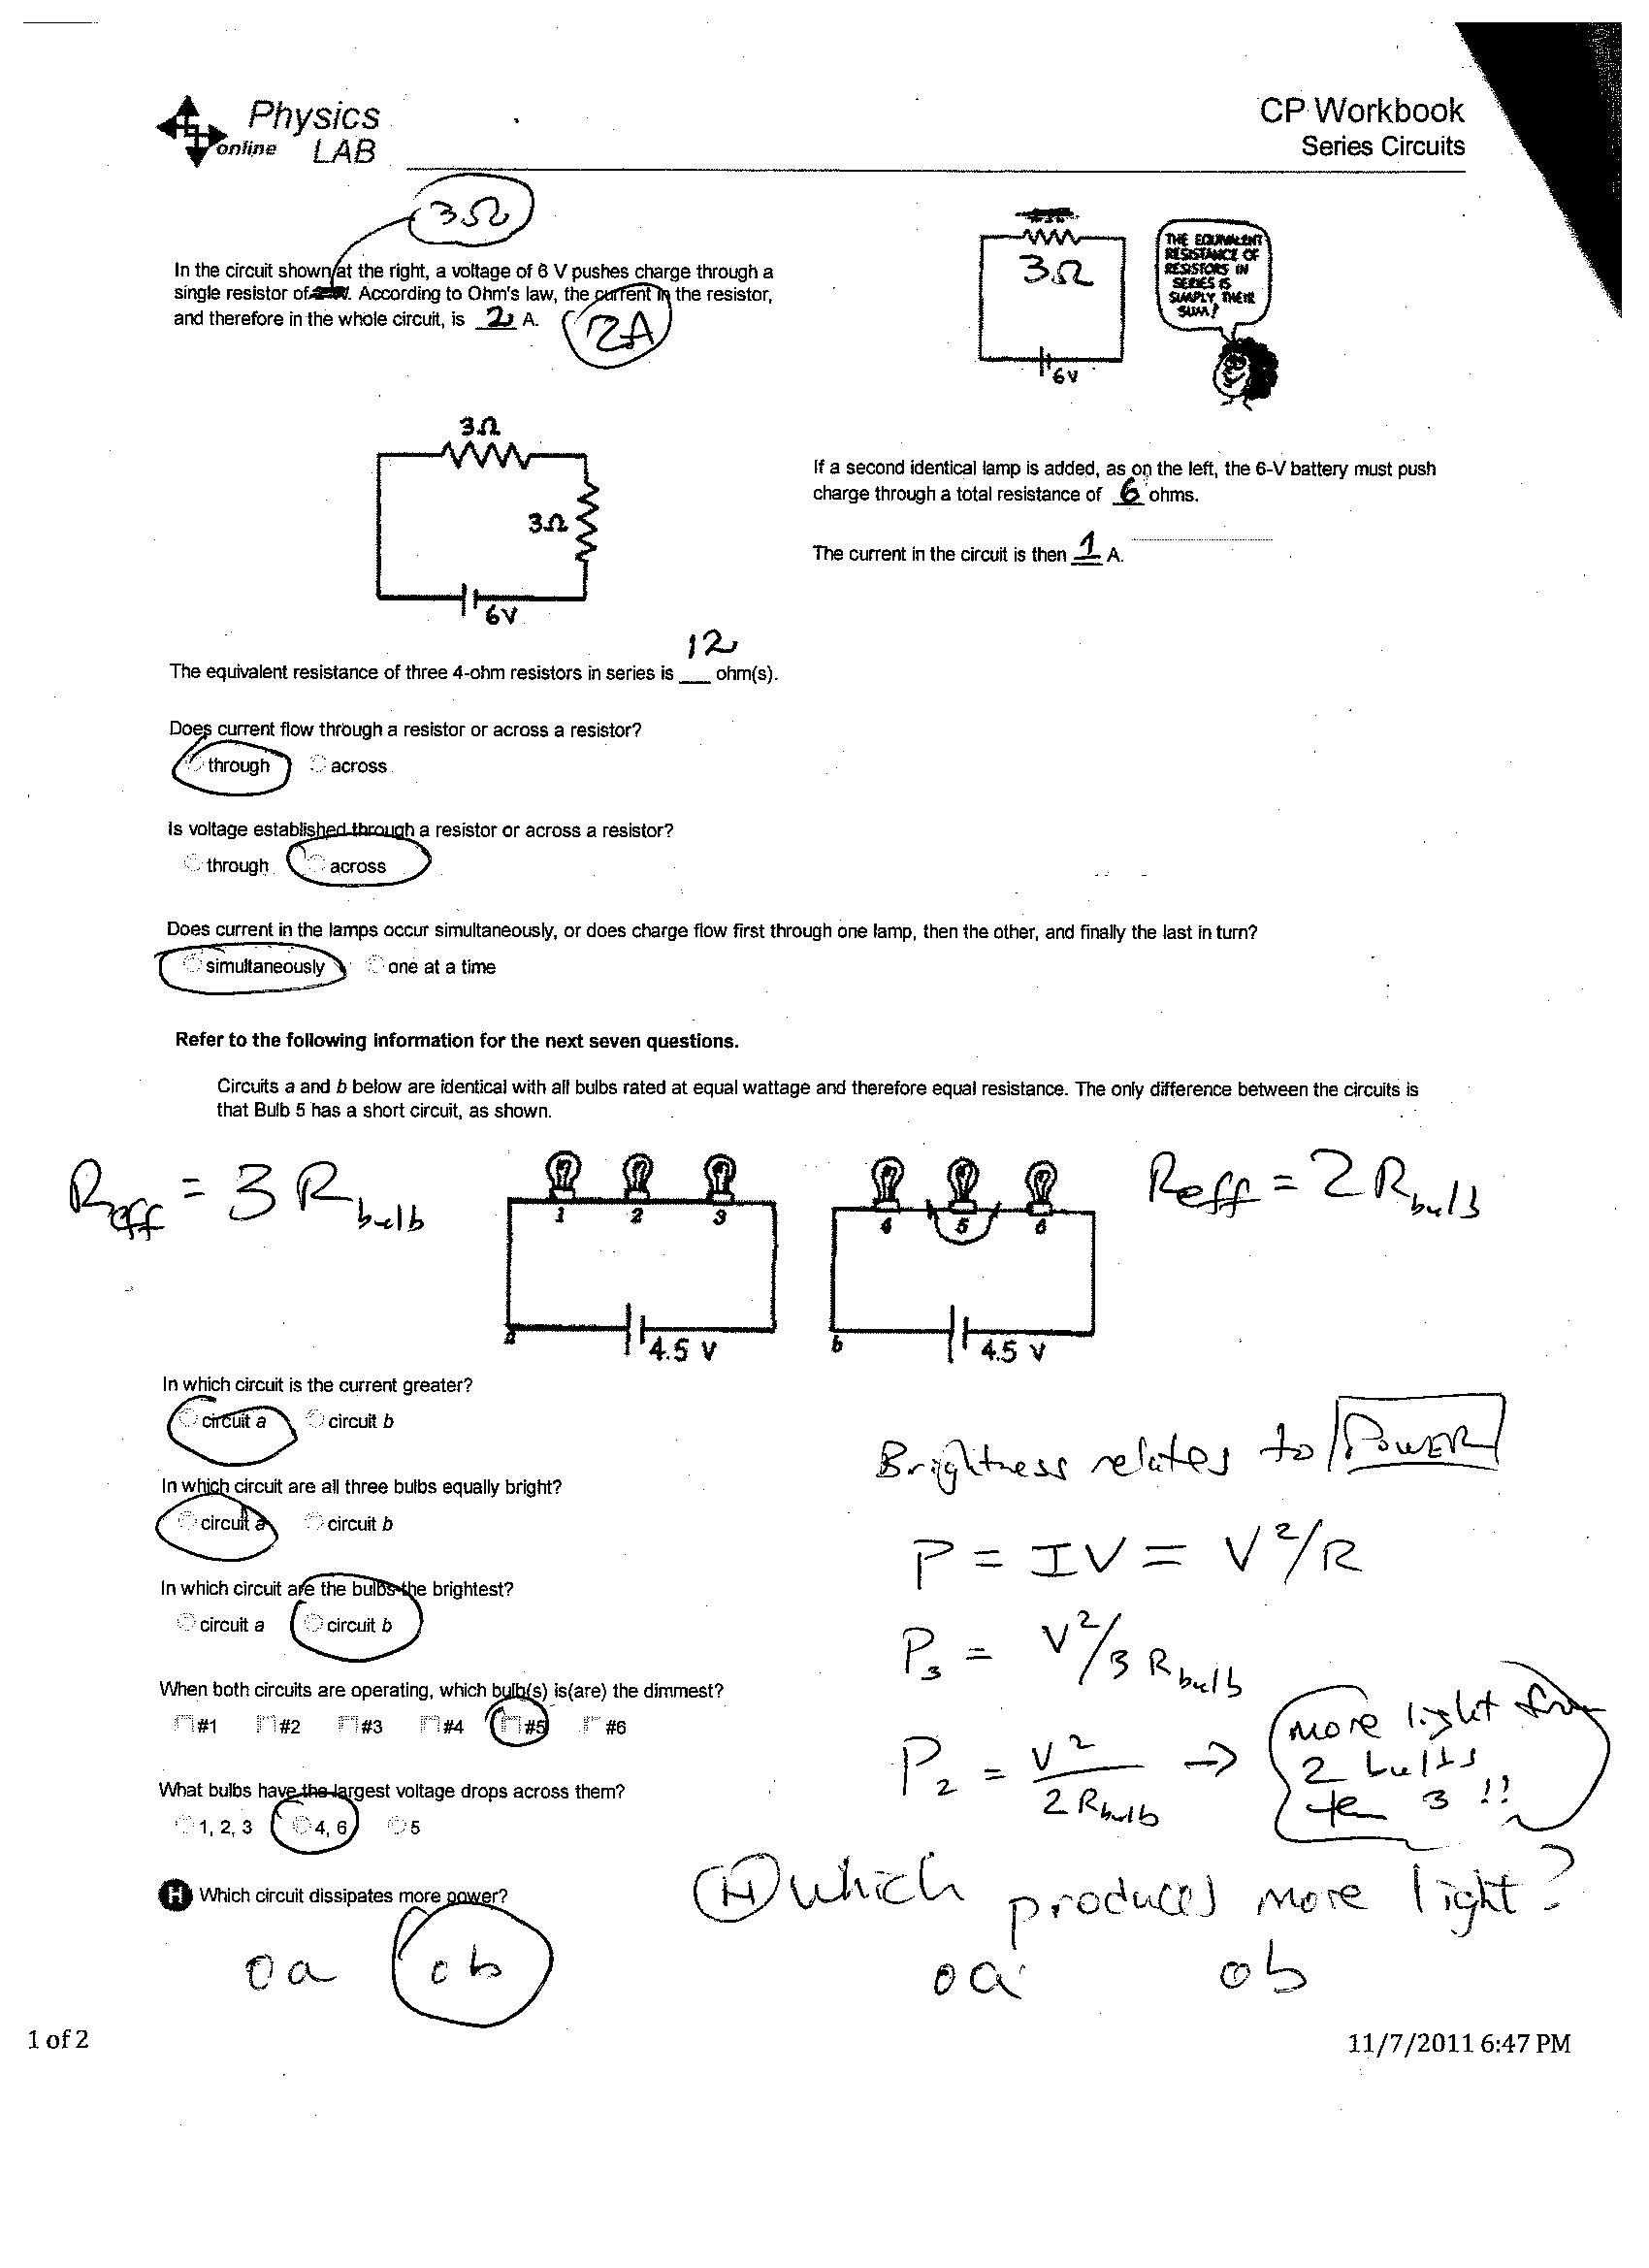 Worksheets Cpo Science Worksheets assignments dr roths physix page 5 6